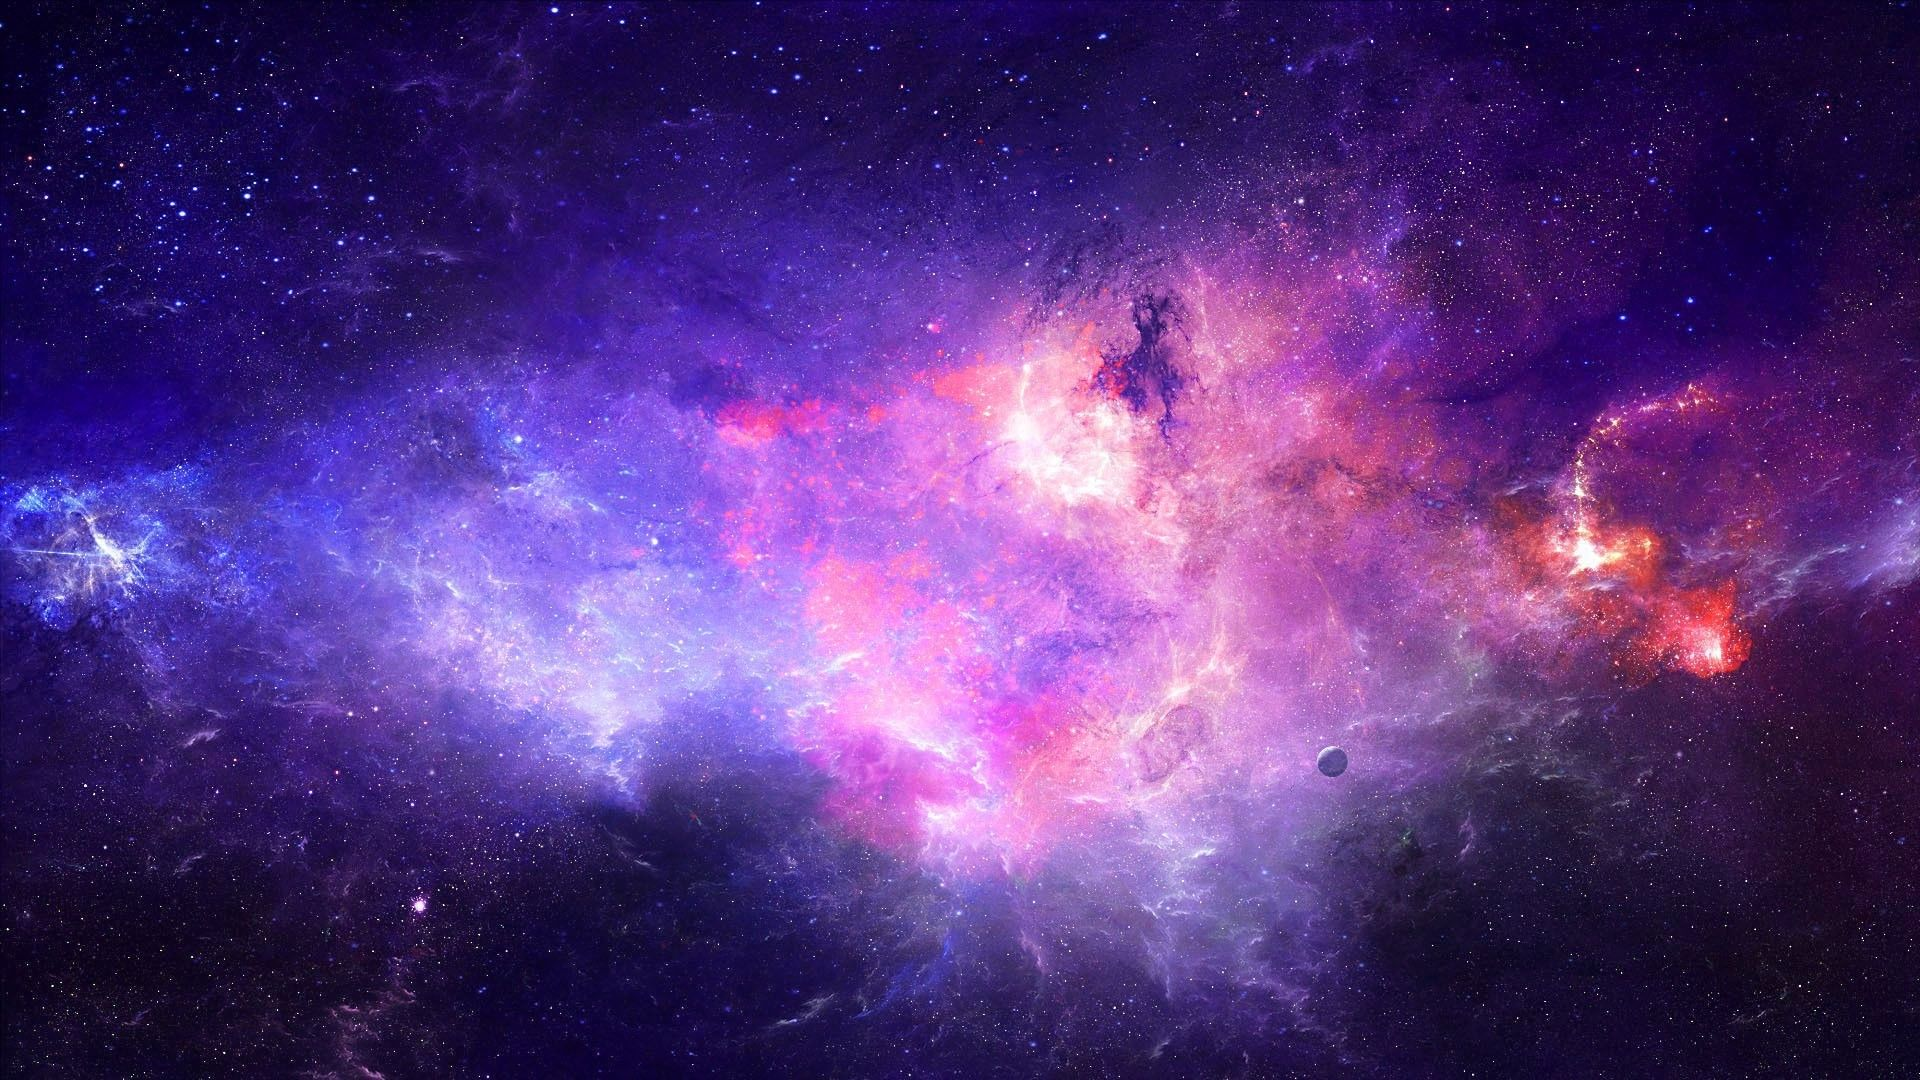 Outer Space Stars Wallpaper Hd Cool 7 HD Wallpapers